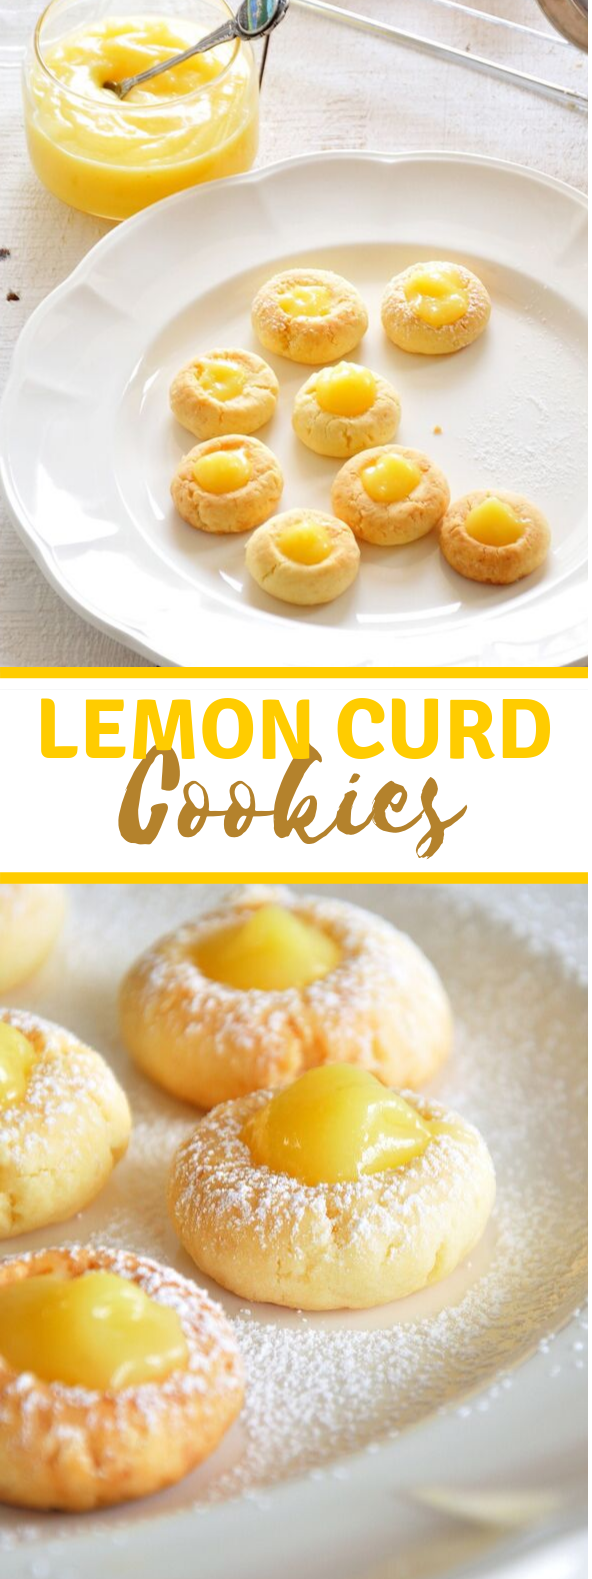 Lemon Curd Cookies #desserts #yummy